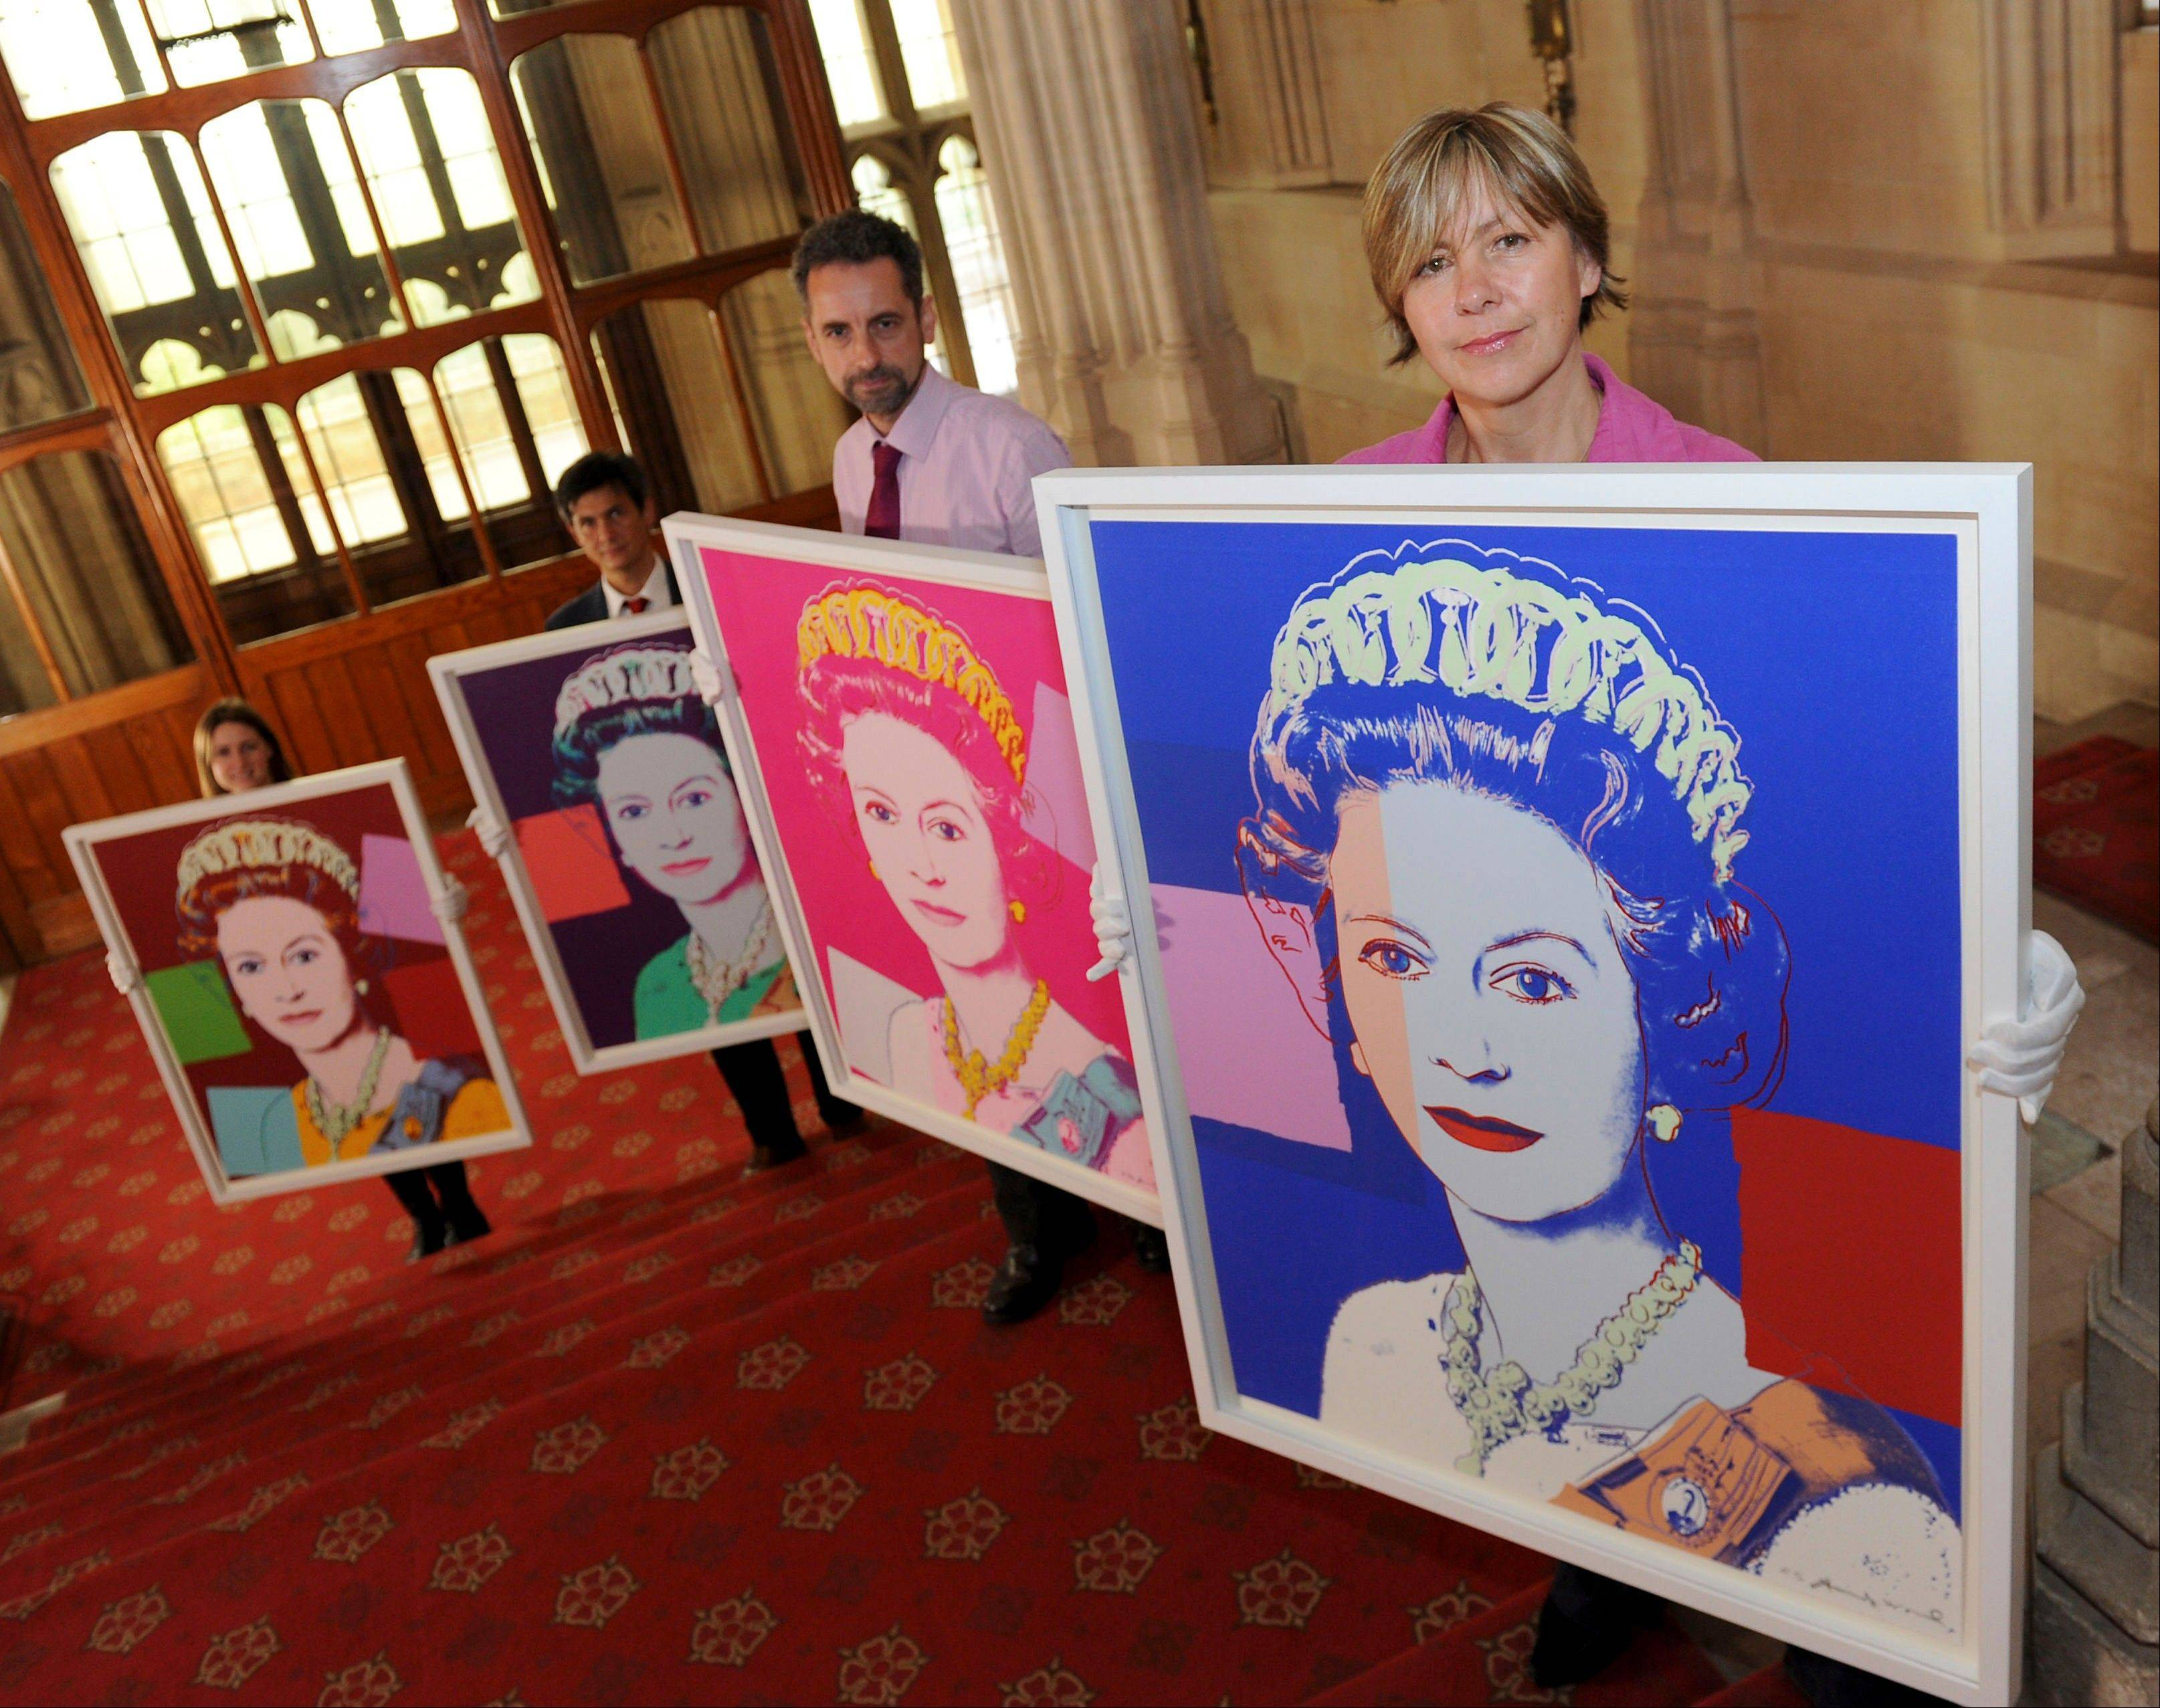 "Andy Warhol portraits of Queen Elizabeth II are displayed in Windsor Castle, Windsor, England, Monday. They will form part of the ""Portraits of a Monarch"" exhibit starting in November at the castle until June 2013. The screenprints are based on a formal photograph of the queen wearing a tiara and necklace that was used during her Silver Jubilee celebrations in 1977."